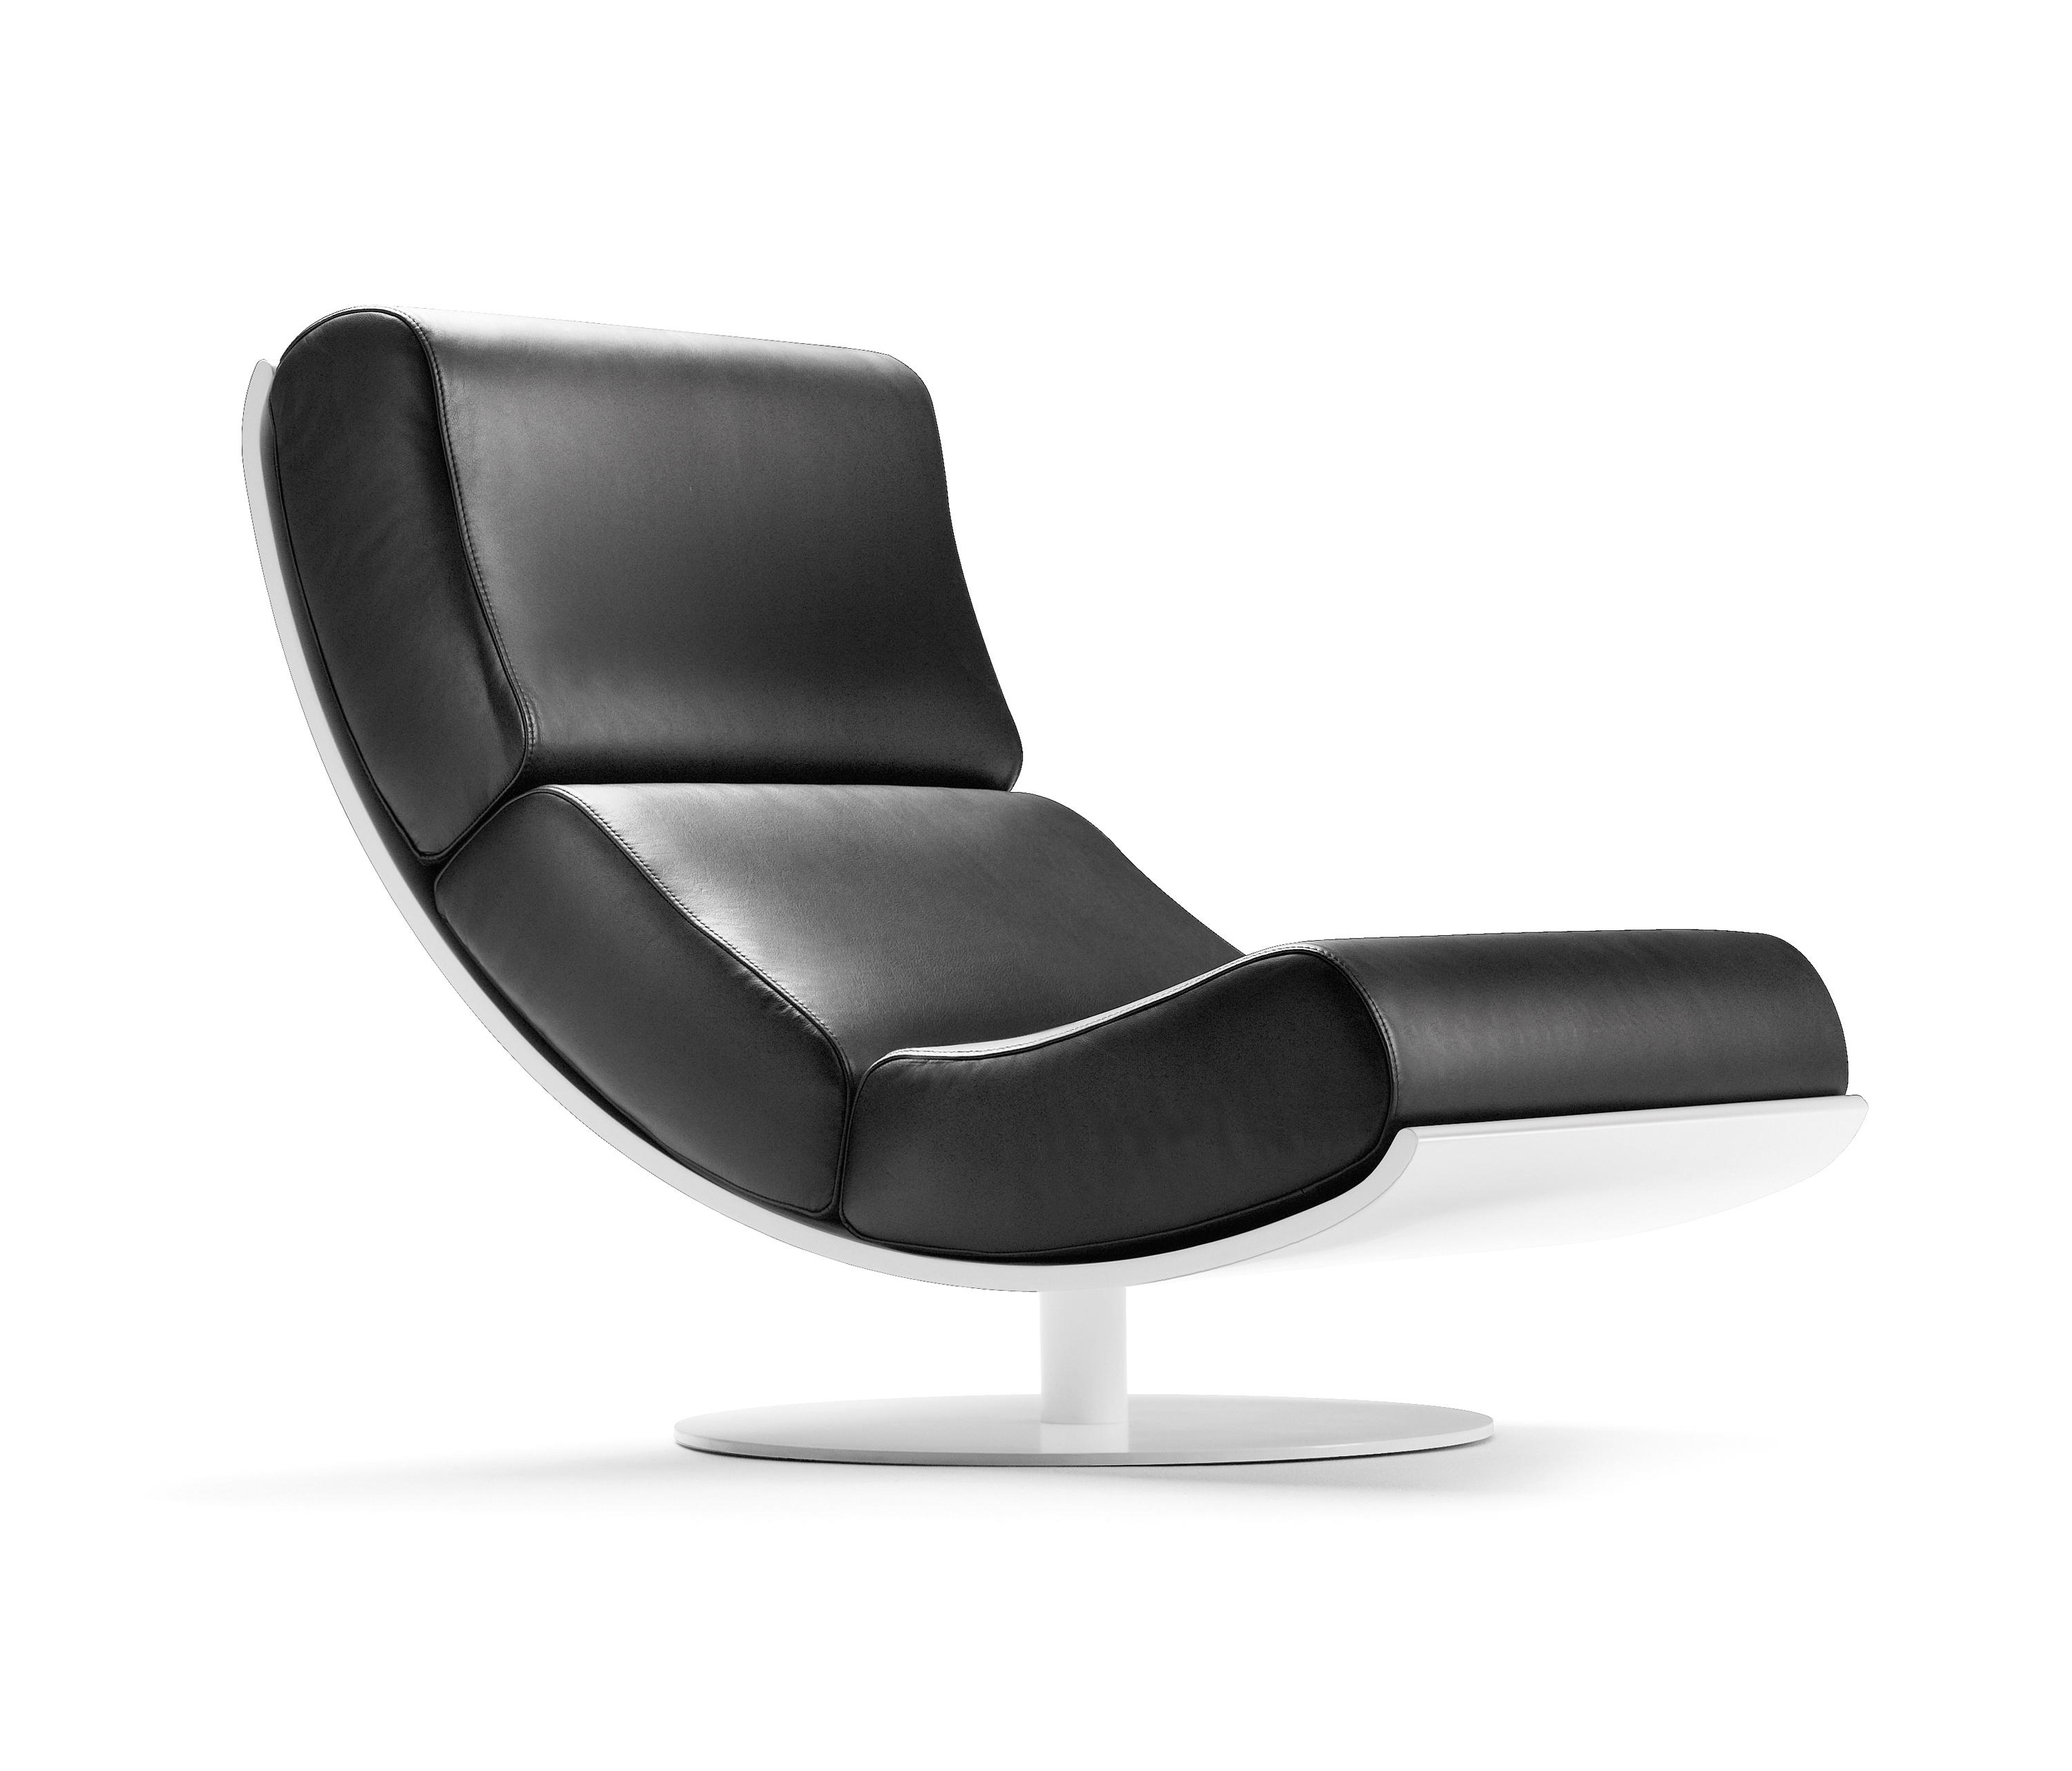 Art lounge chairs from sancal architonic for Grand repos chair replica